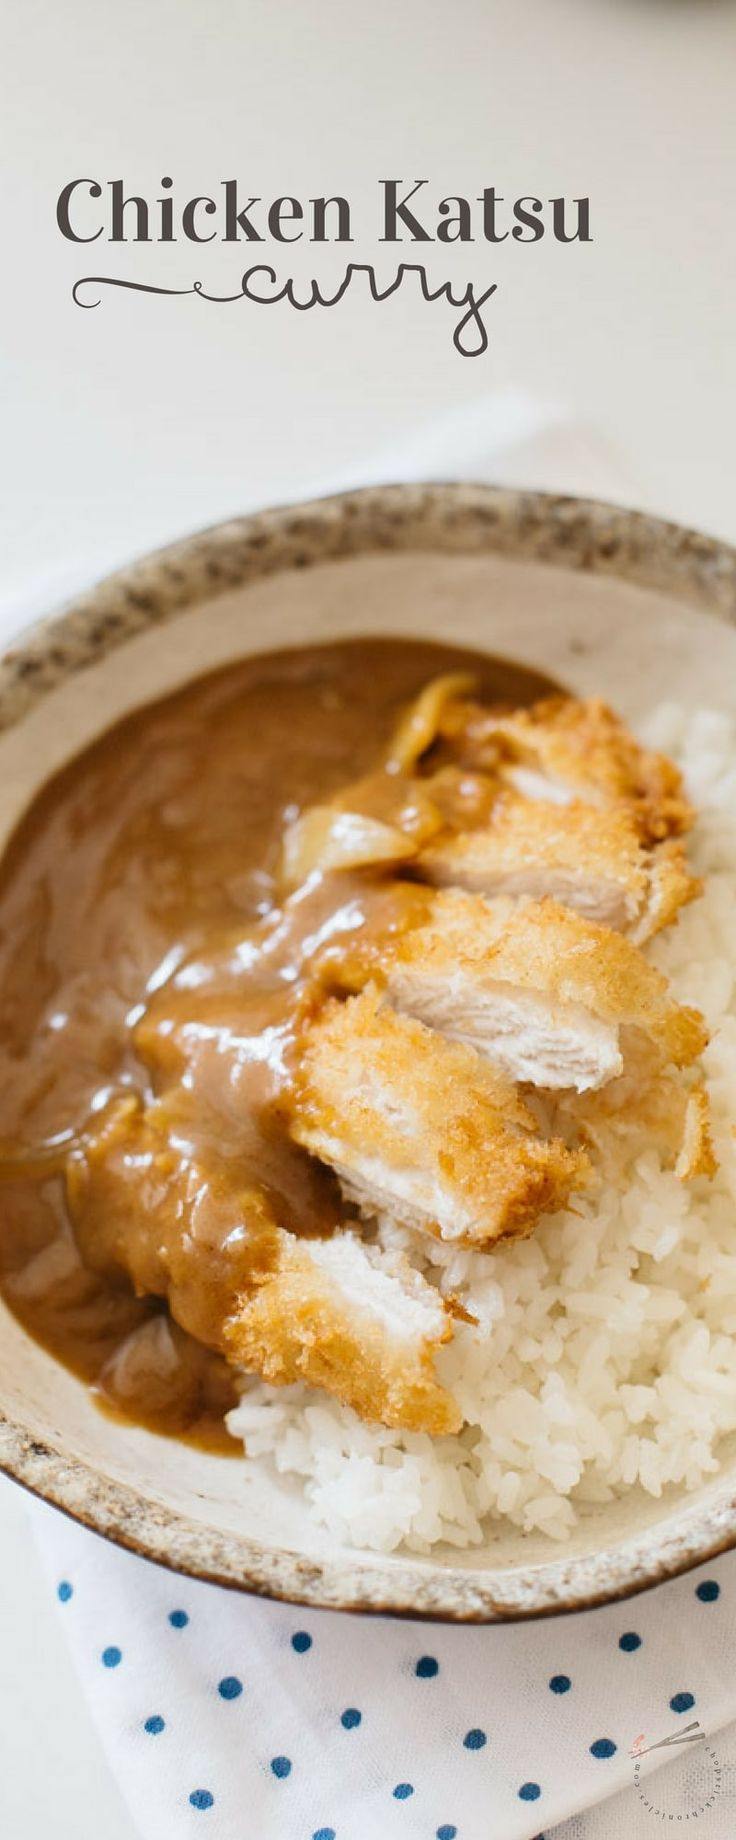 Chicken Katsu Curry Recipe Chicken Katsu Curry Recipes Curry Recipes